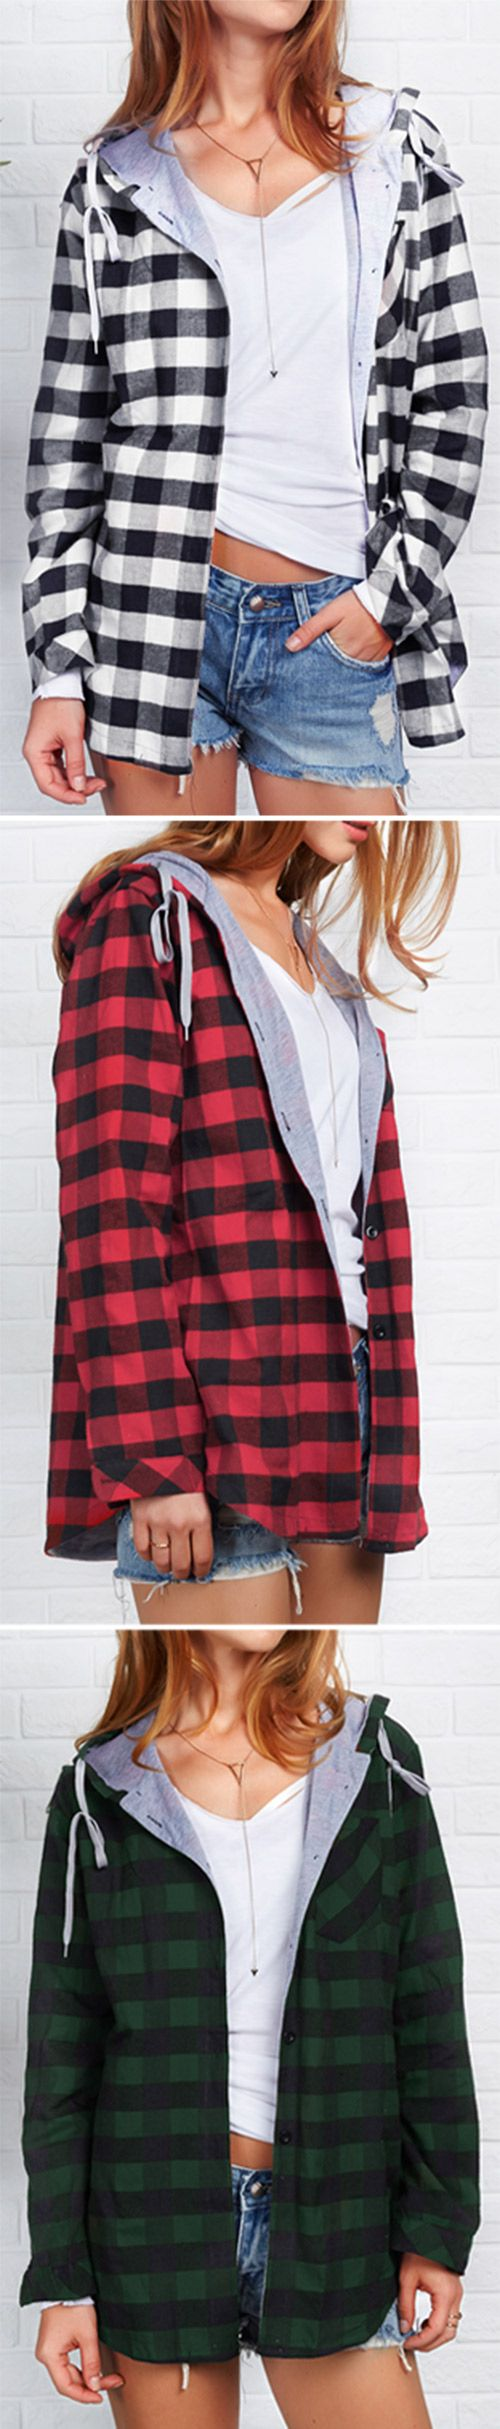 Take it, $24.99 Now! Short Shipping Time! Easy Return + Refund! Get ready to stun everyone in this top! This top has all the wow factors in the details-classic plaid pattern and a lovely hood. Save more pieces at Cupshe.com